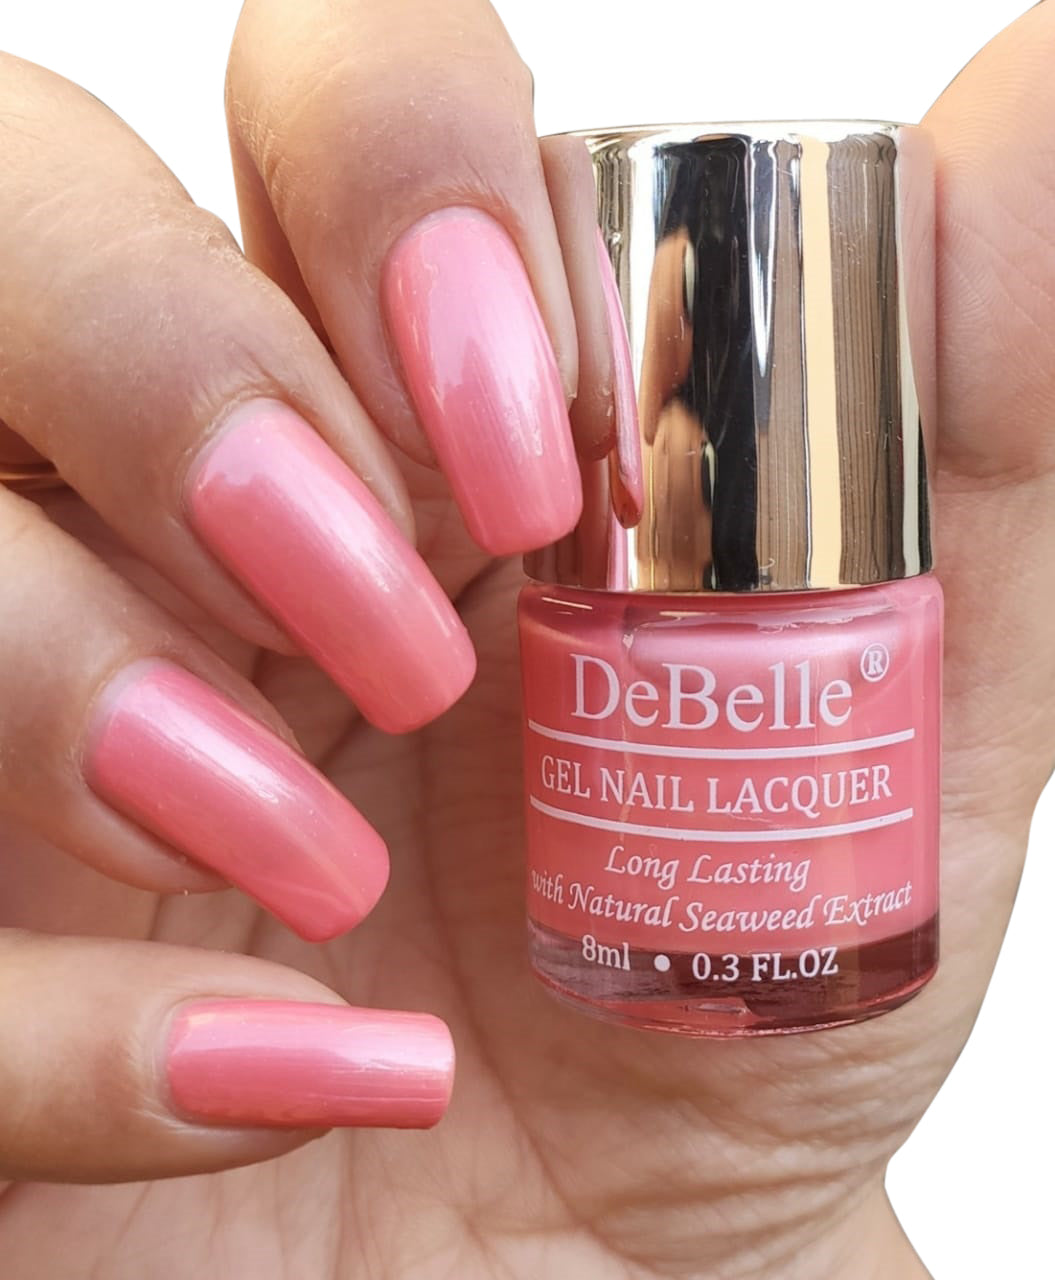 Debelle Gel Nail Polish Miss Bliss Pearl Pink Nail Polish For Women Debelle Cosmetix Online Store